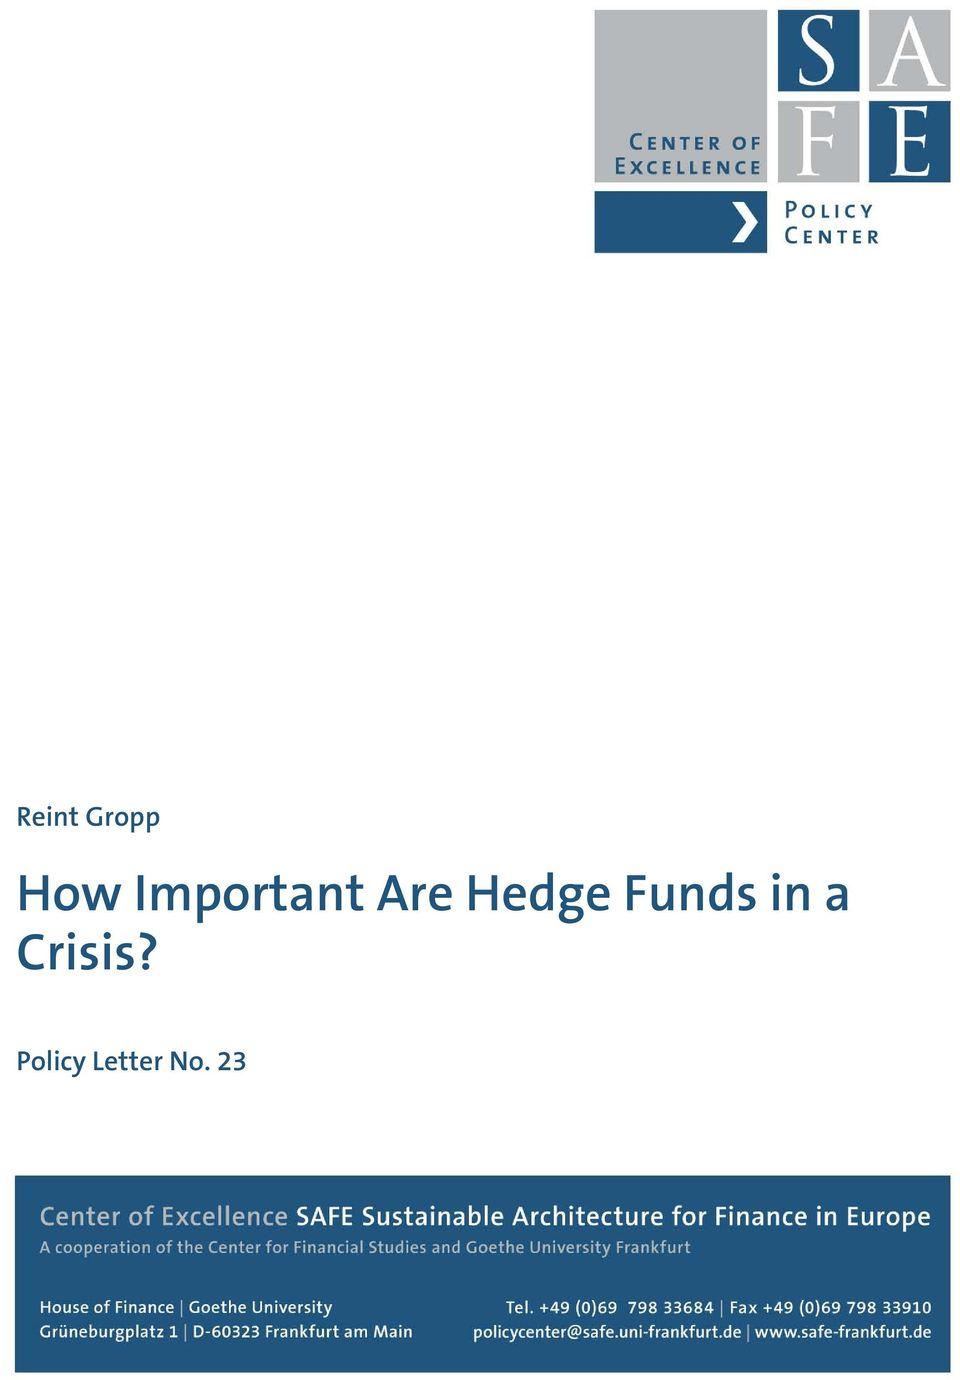 Hedge Funds in a